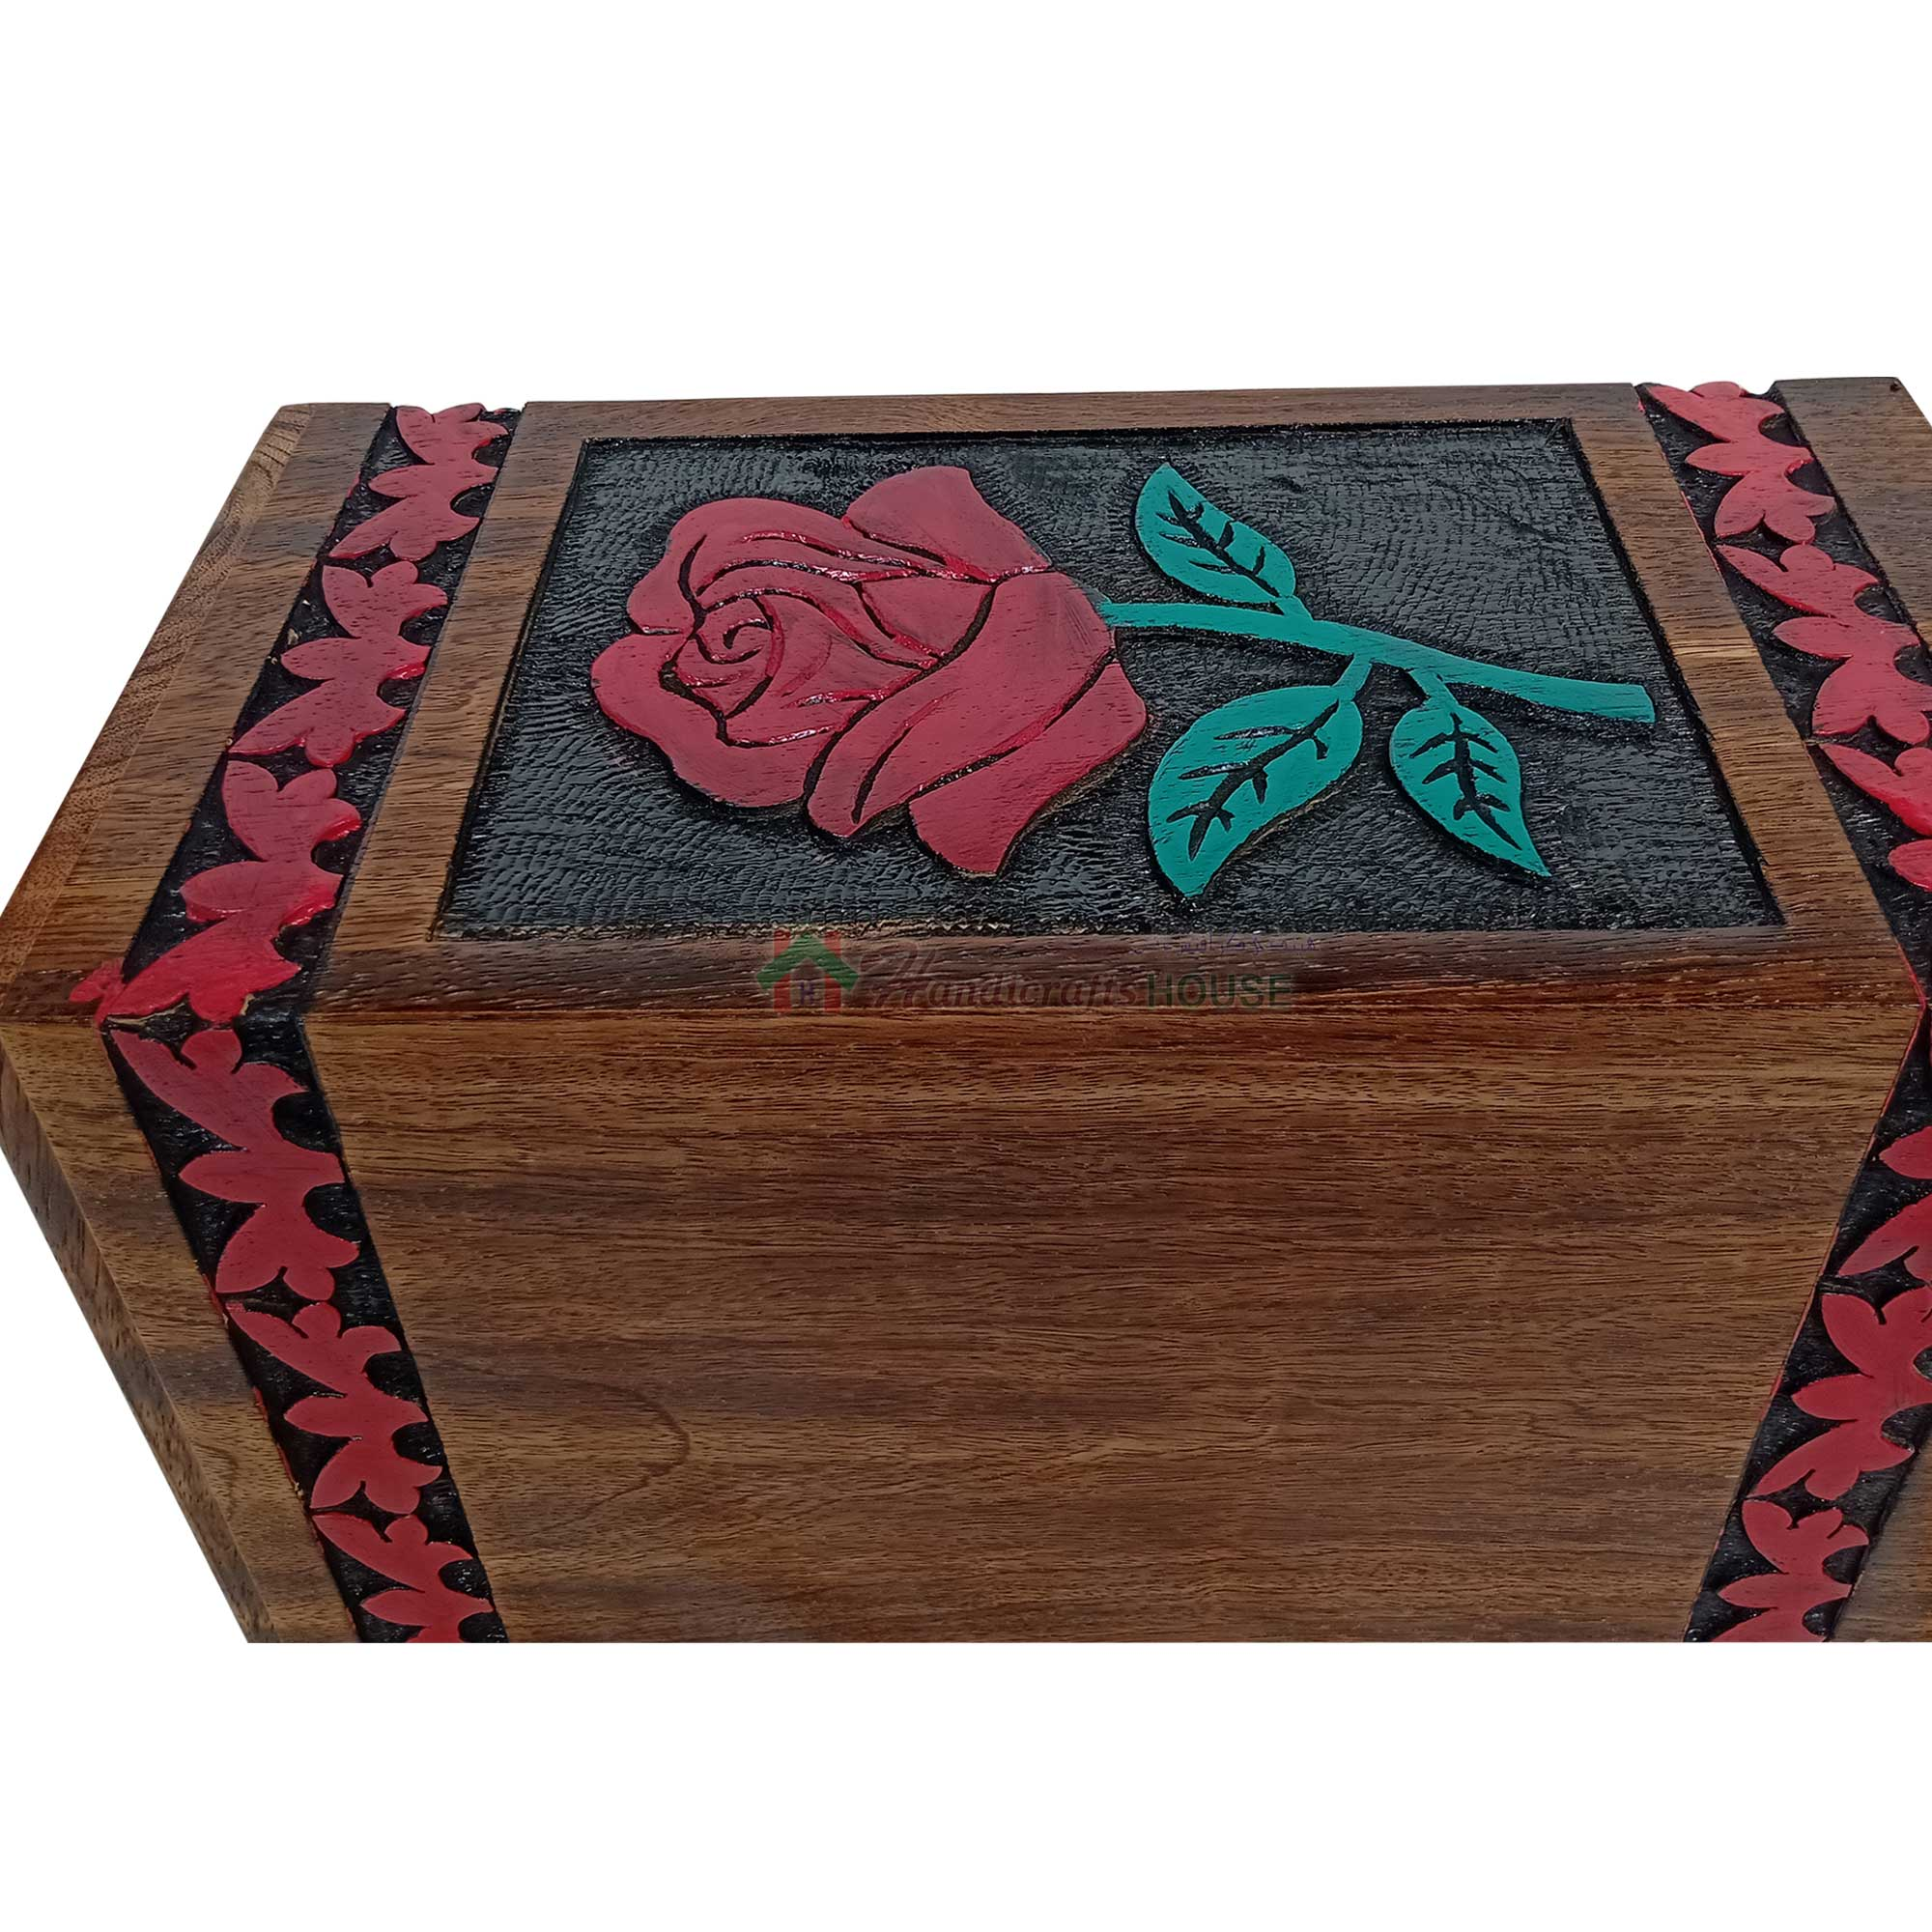 Hands Carving Flower Wooden Cremation Urns, Solid Wood Burial Box for Human or Pet Ashes Adult - Hardwood Memorial Large Urn for Loved One and Father